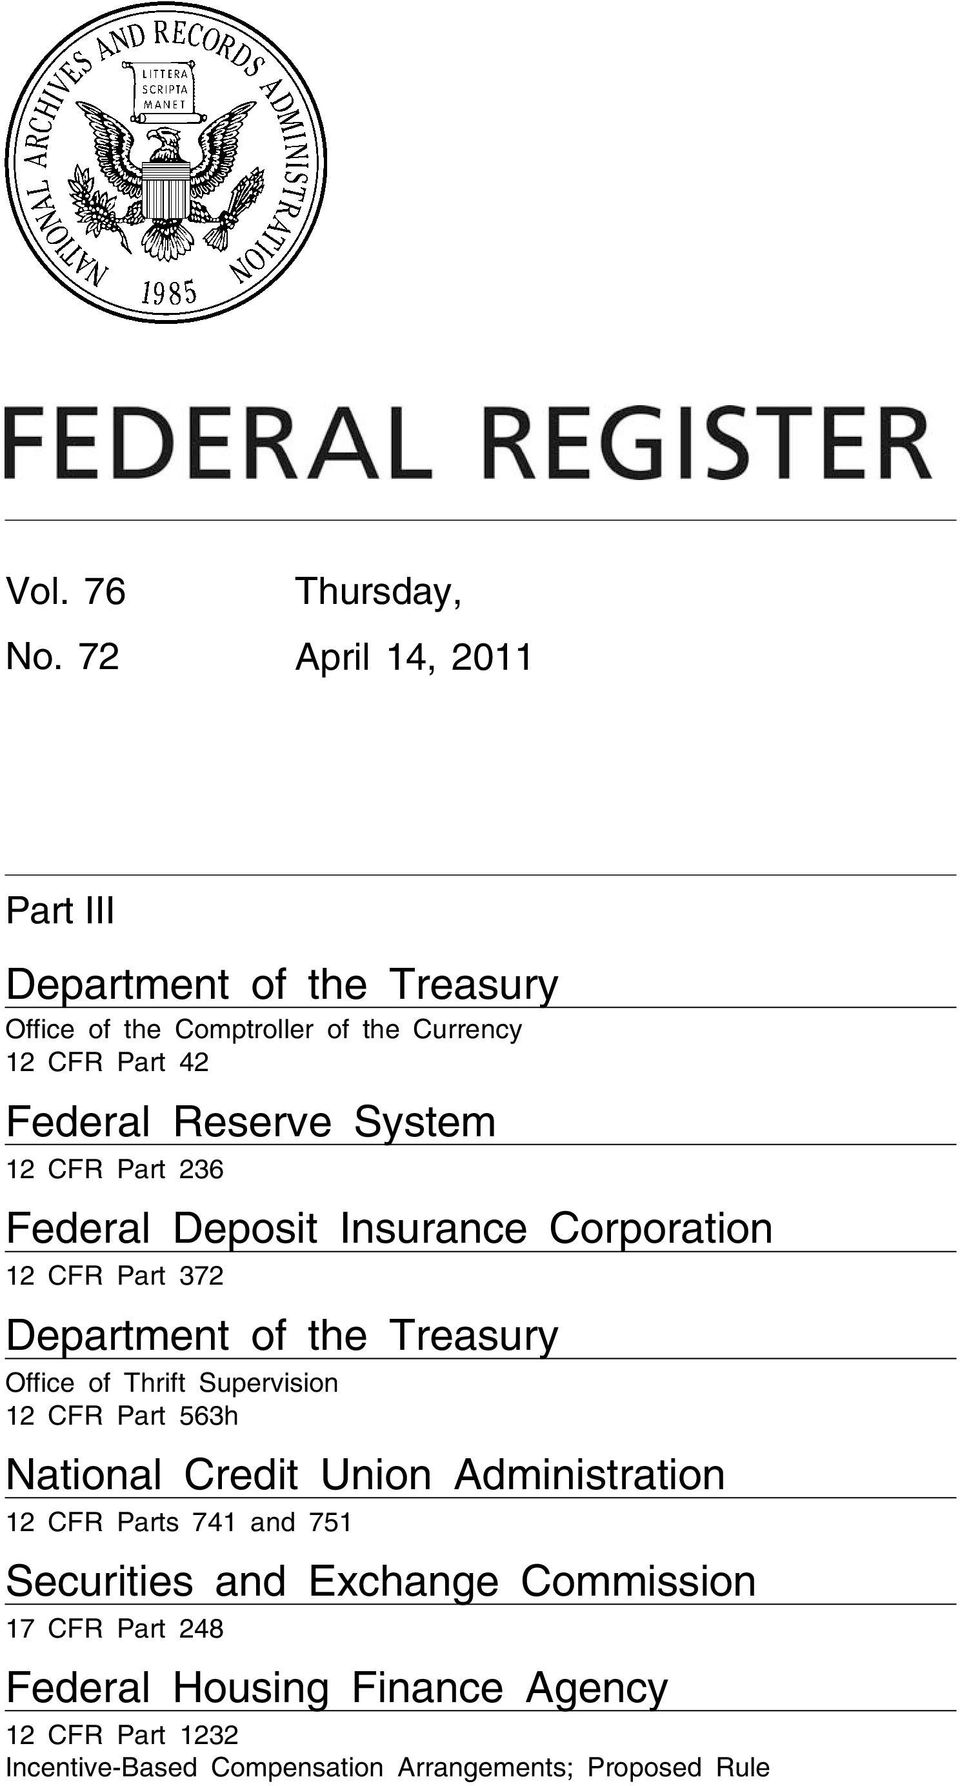 Federal Deposit Insurance Corporation 12 CFR Part 372 Department of the Treasury Office of Thrift Supervision 12 CFR Part 563h National Credit Union